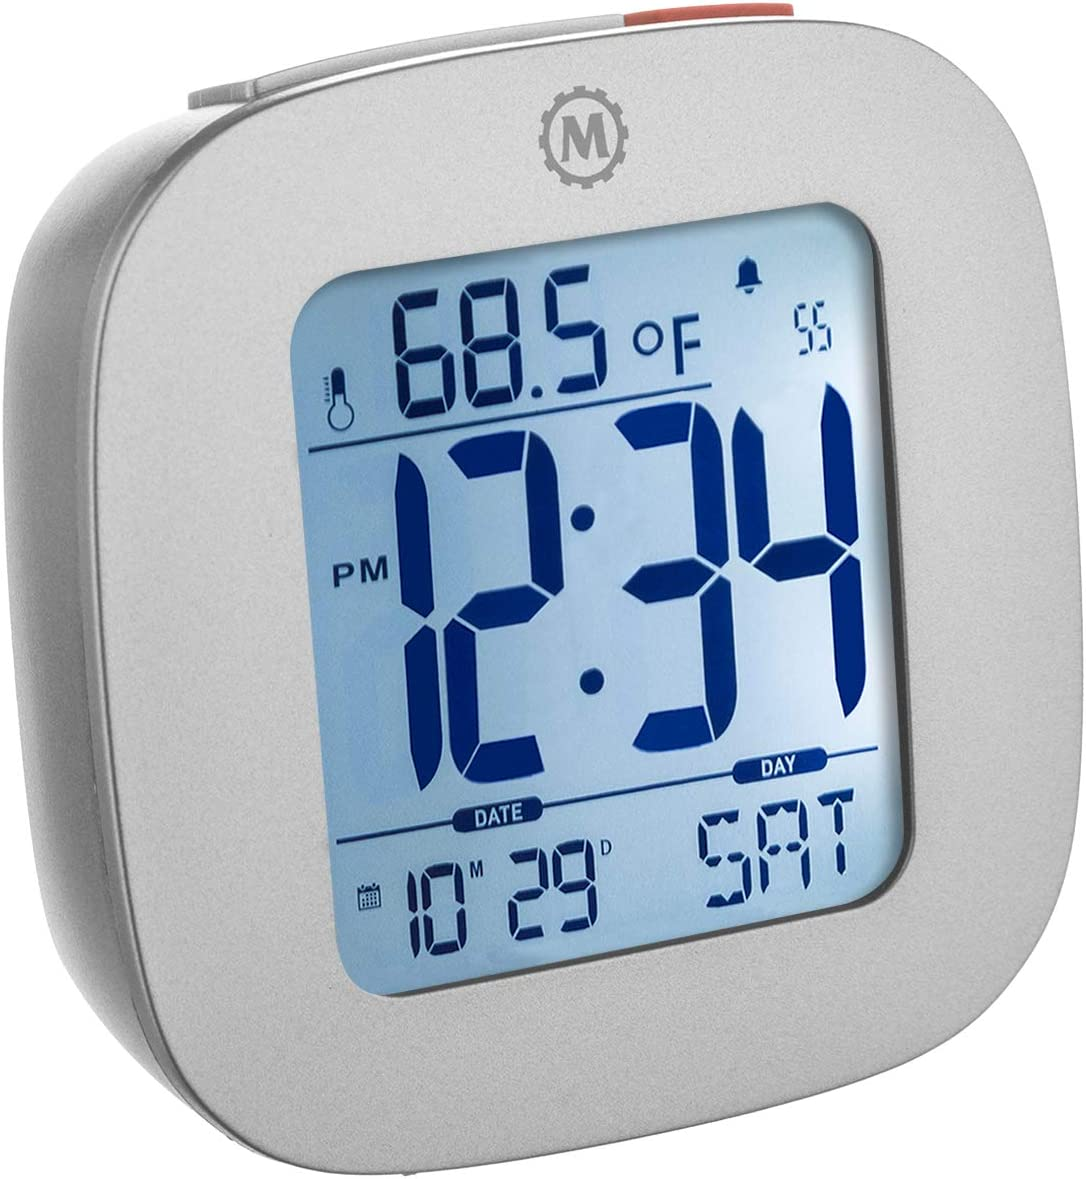 MARATHON CL030058GG Compact Alarm Clock with with Snooze, Light Feature, Temperature and Date - Graphite Grey - Batteries Included